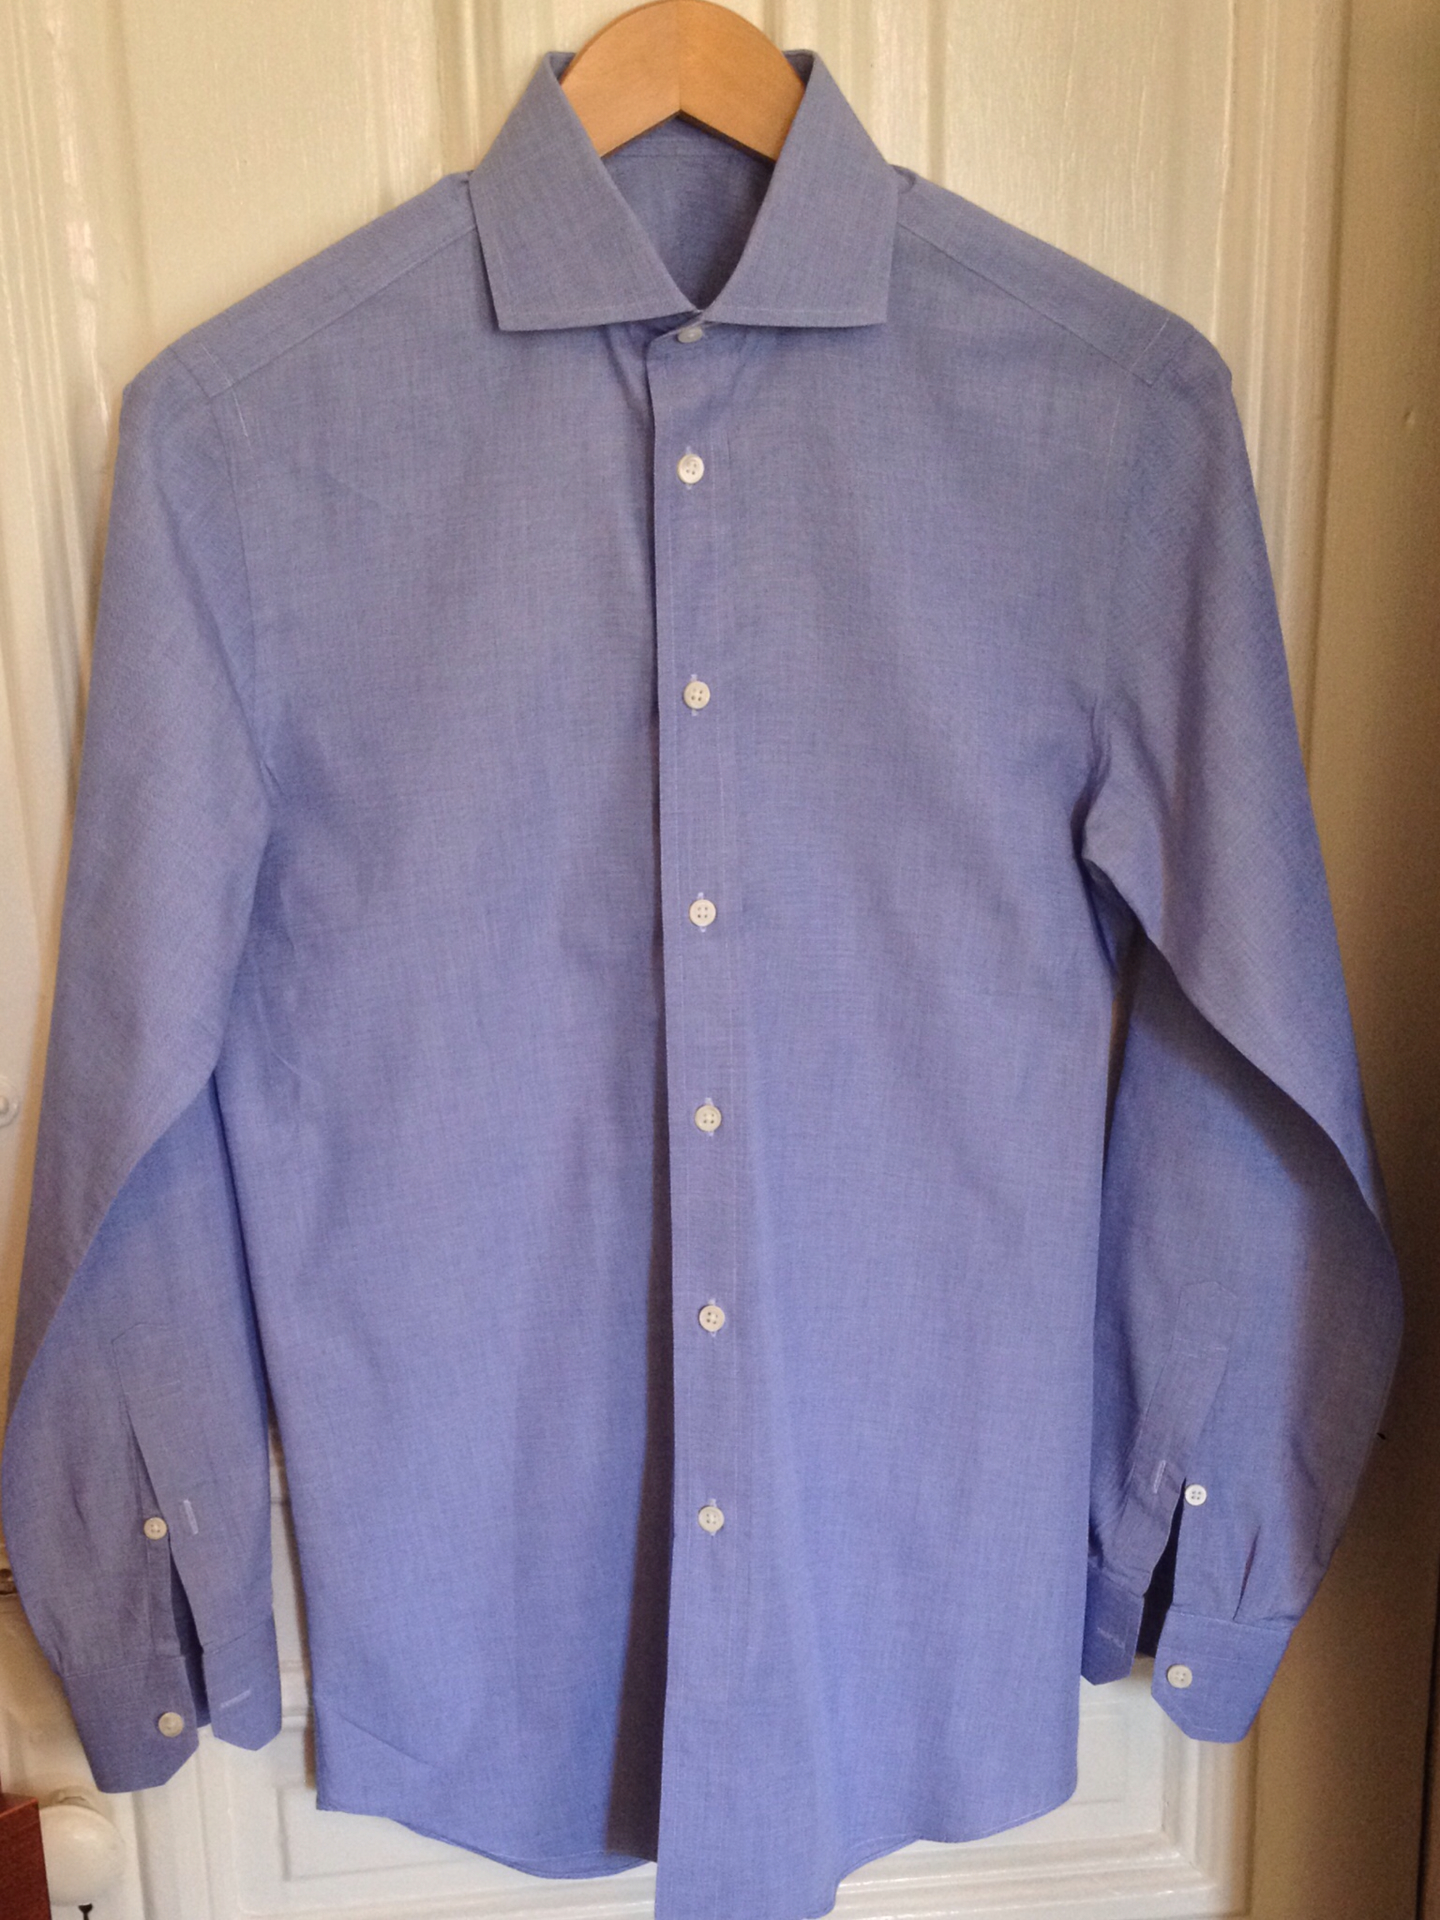 Drops closet cleaning cottonwork blue end on end for Dress shirt vs casual shirt